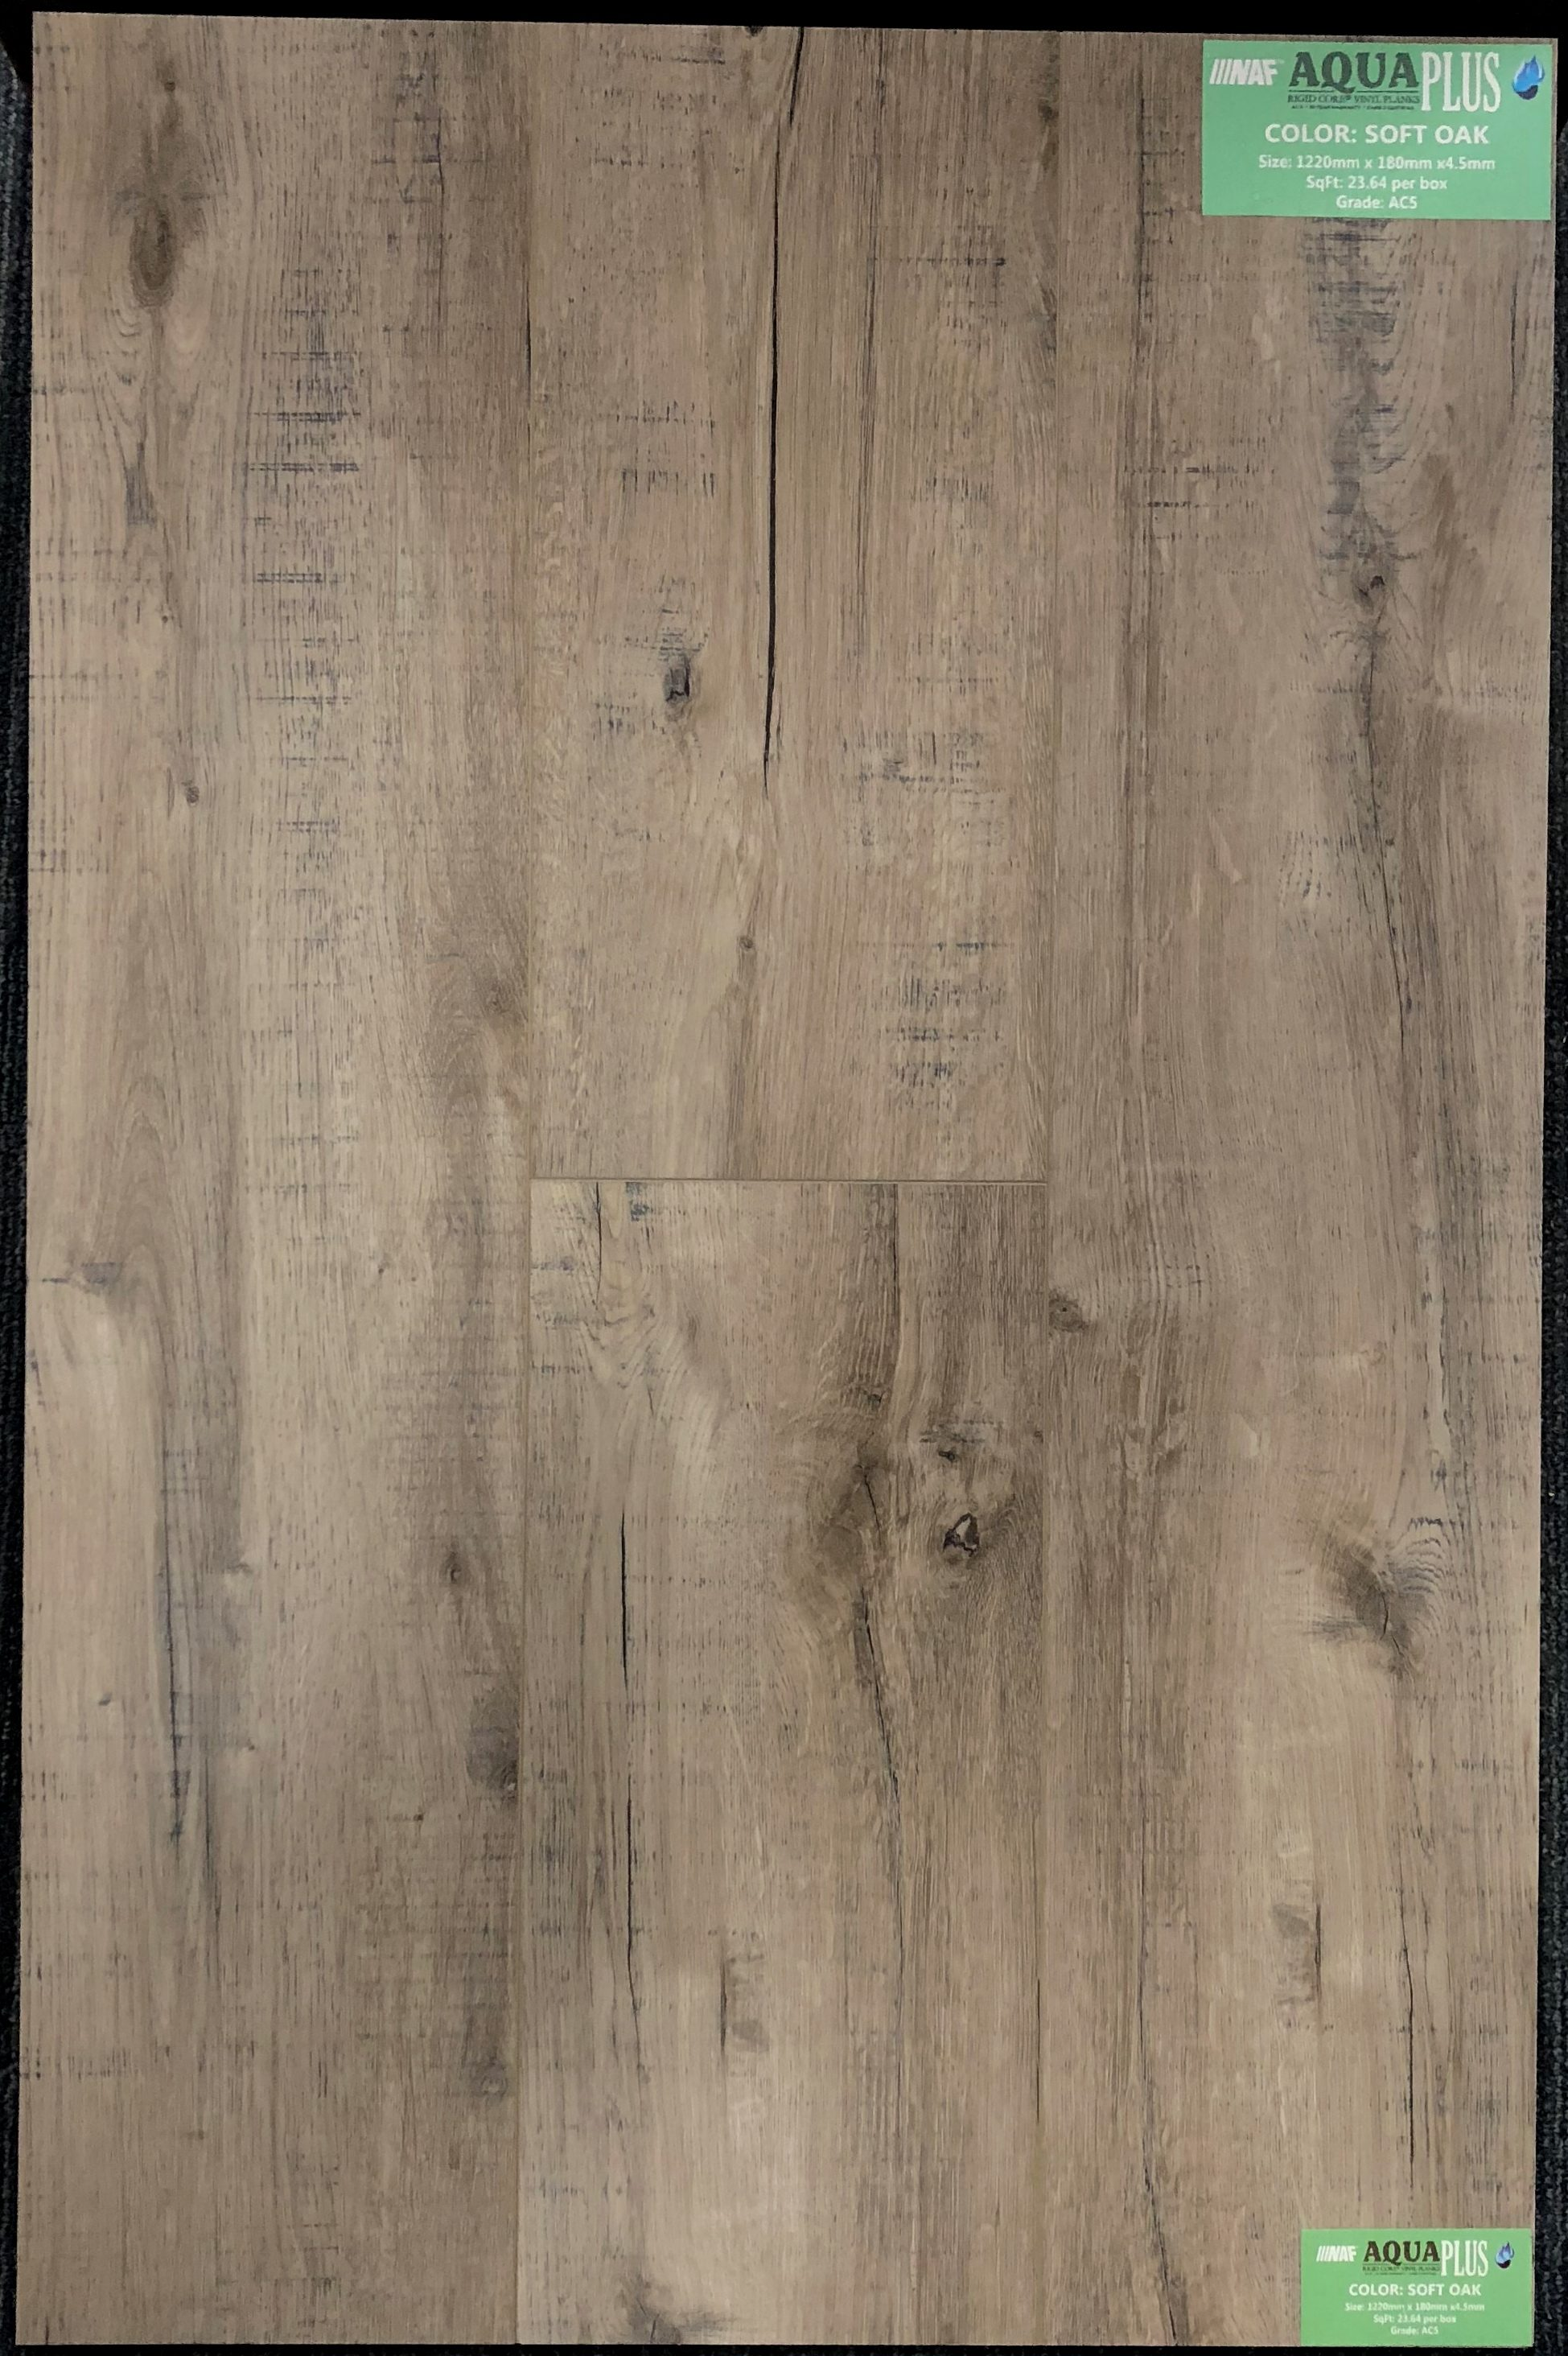 Soft Oak NAF Aquaplus 4.5mm Vinyl Flooring Rigid Core - Drop Clic - 0.3mm Wear Layer Image